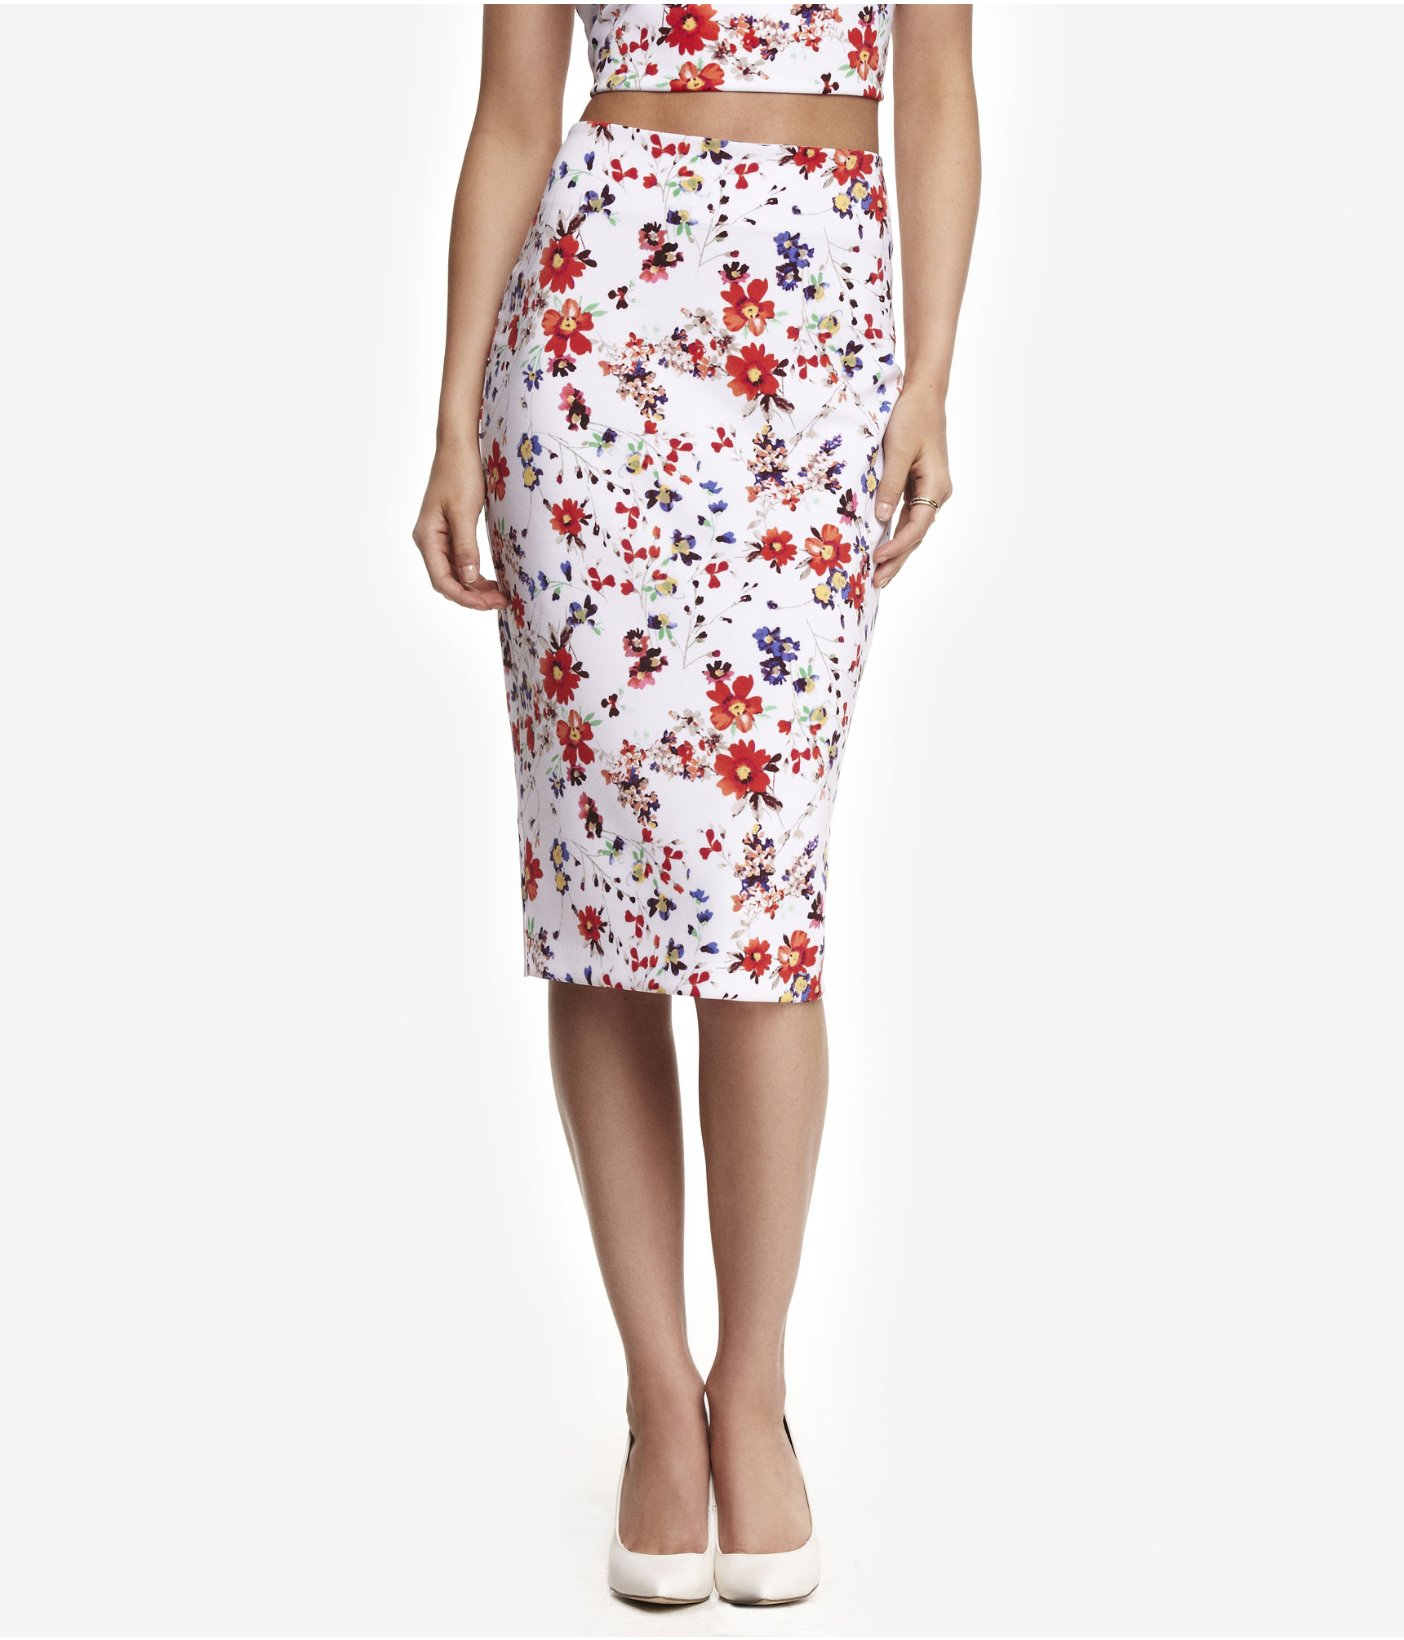 express high waist white floral midi pencil skirt in